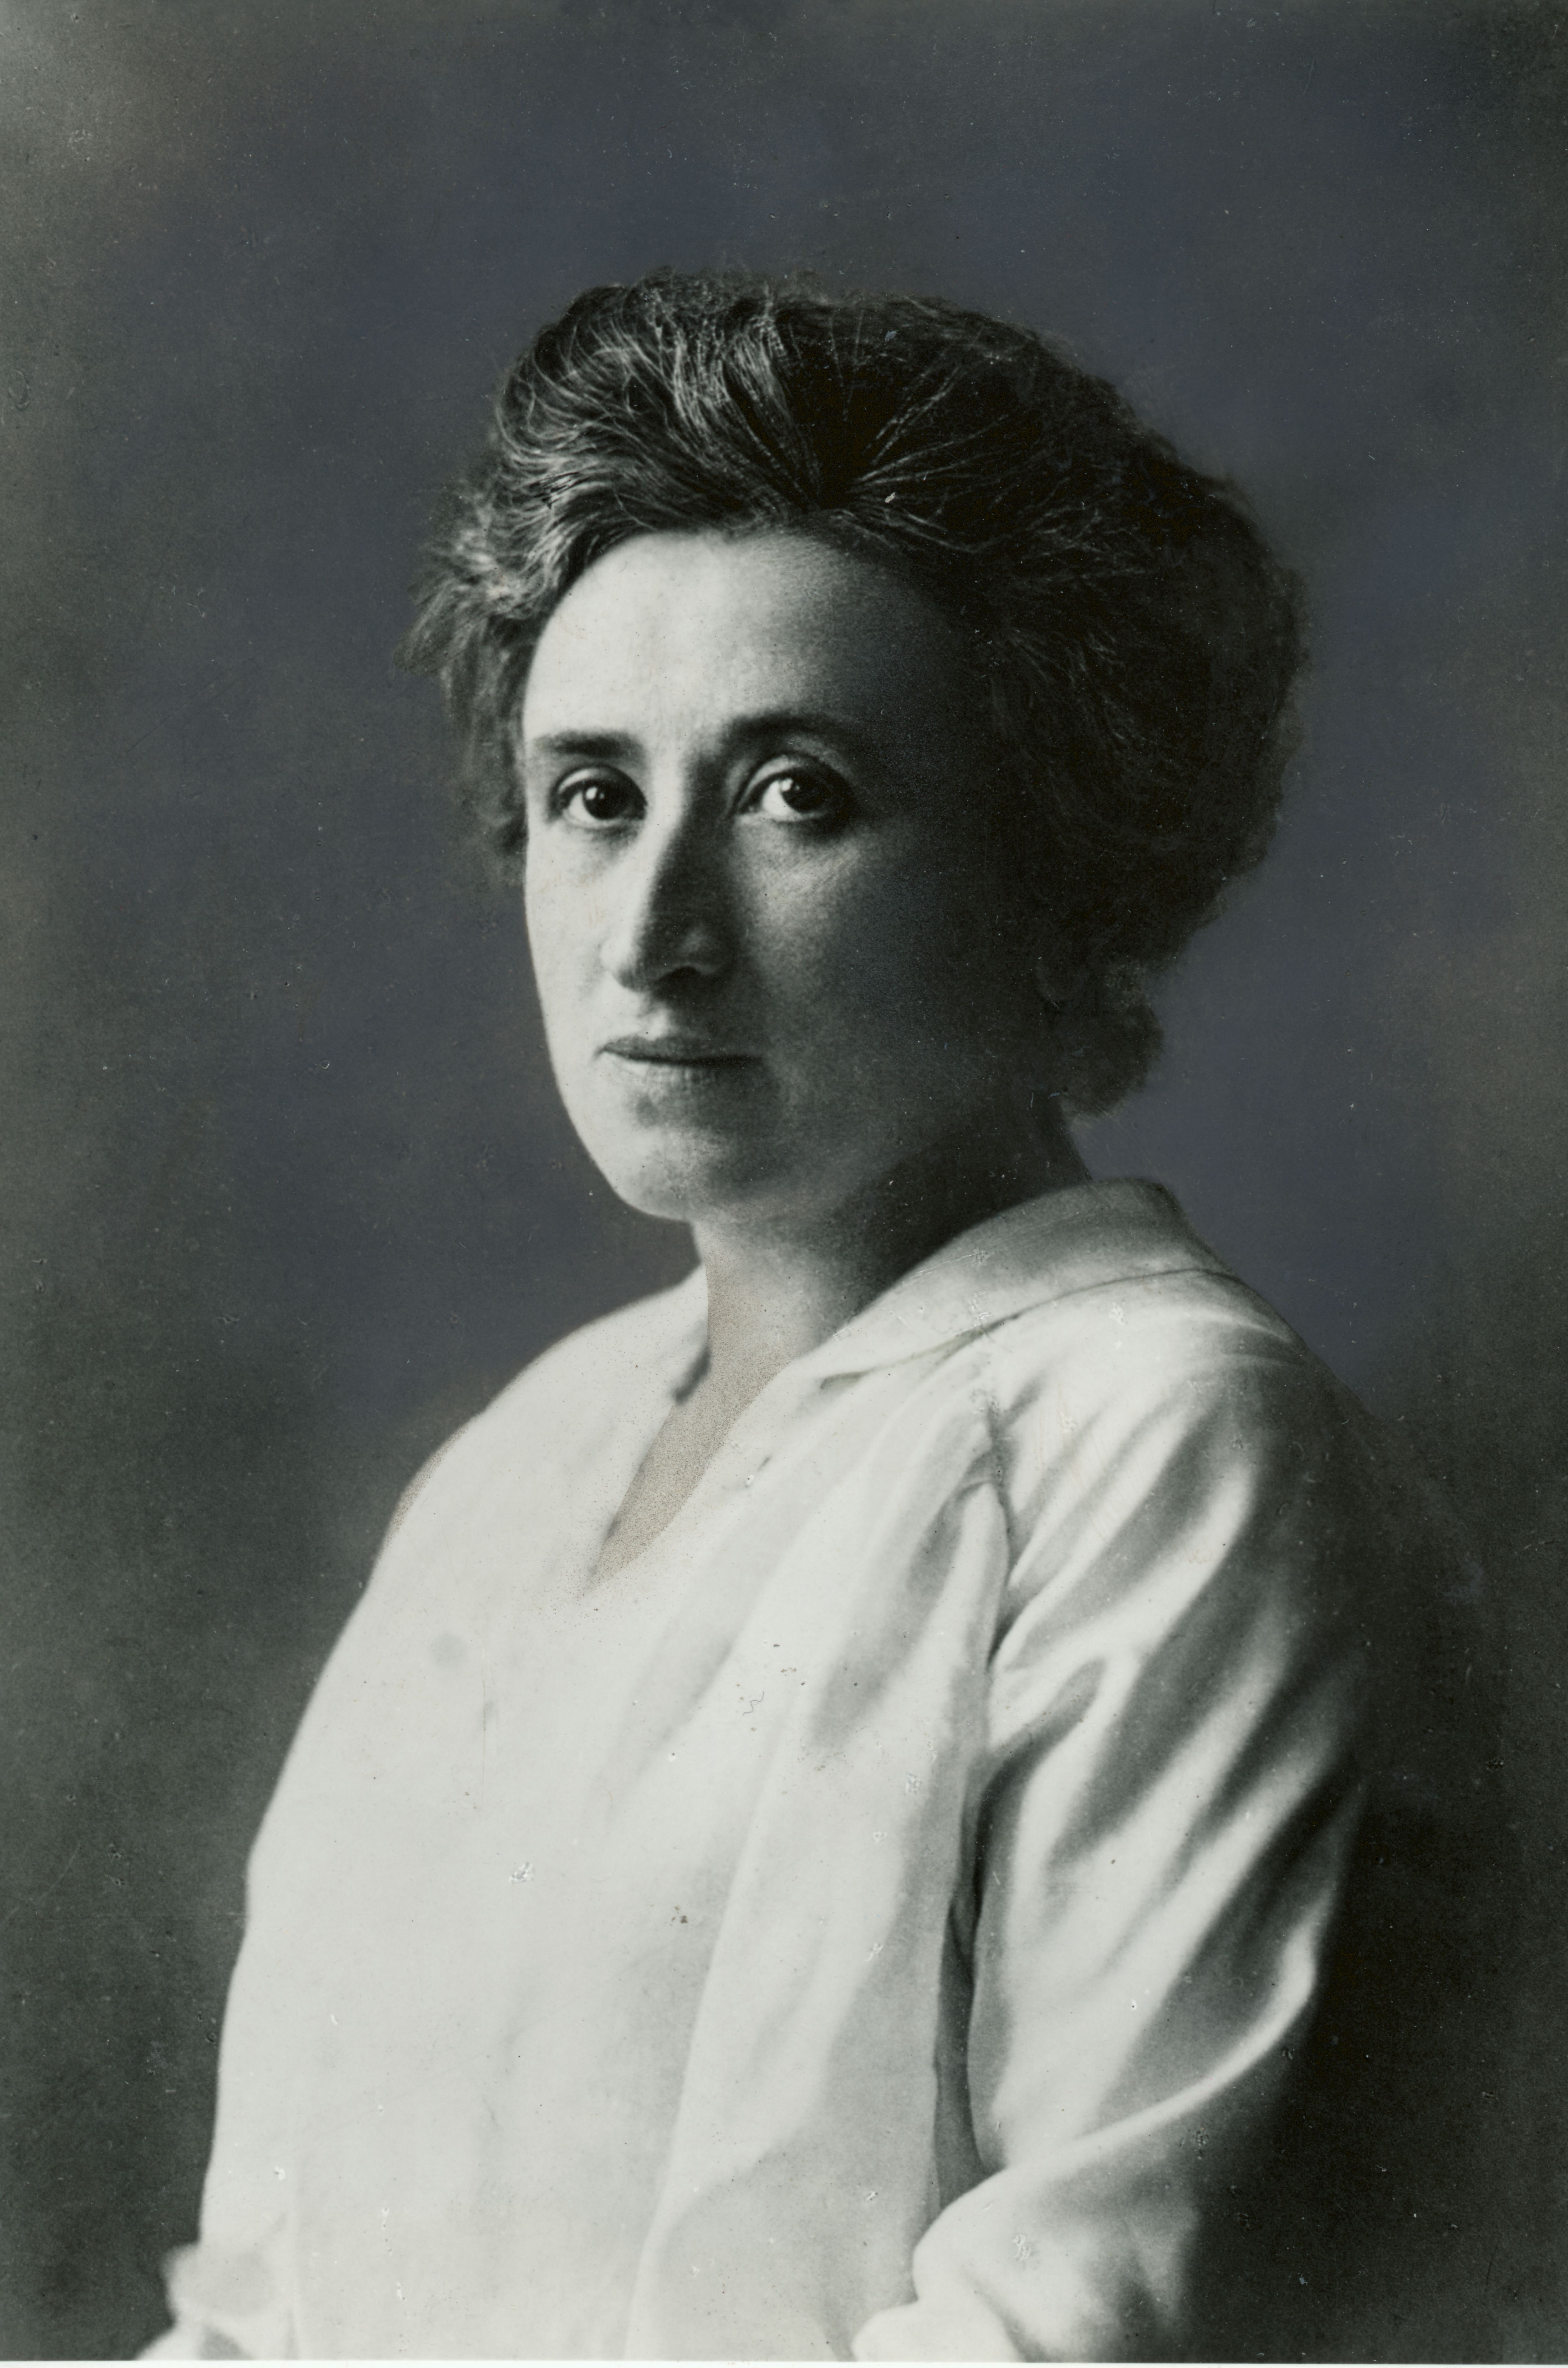 Depiction of Rosa Luxemburgo